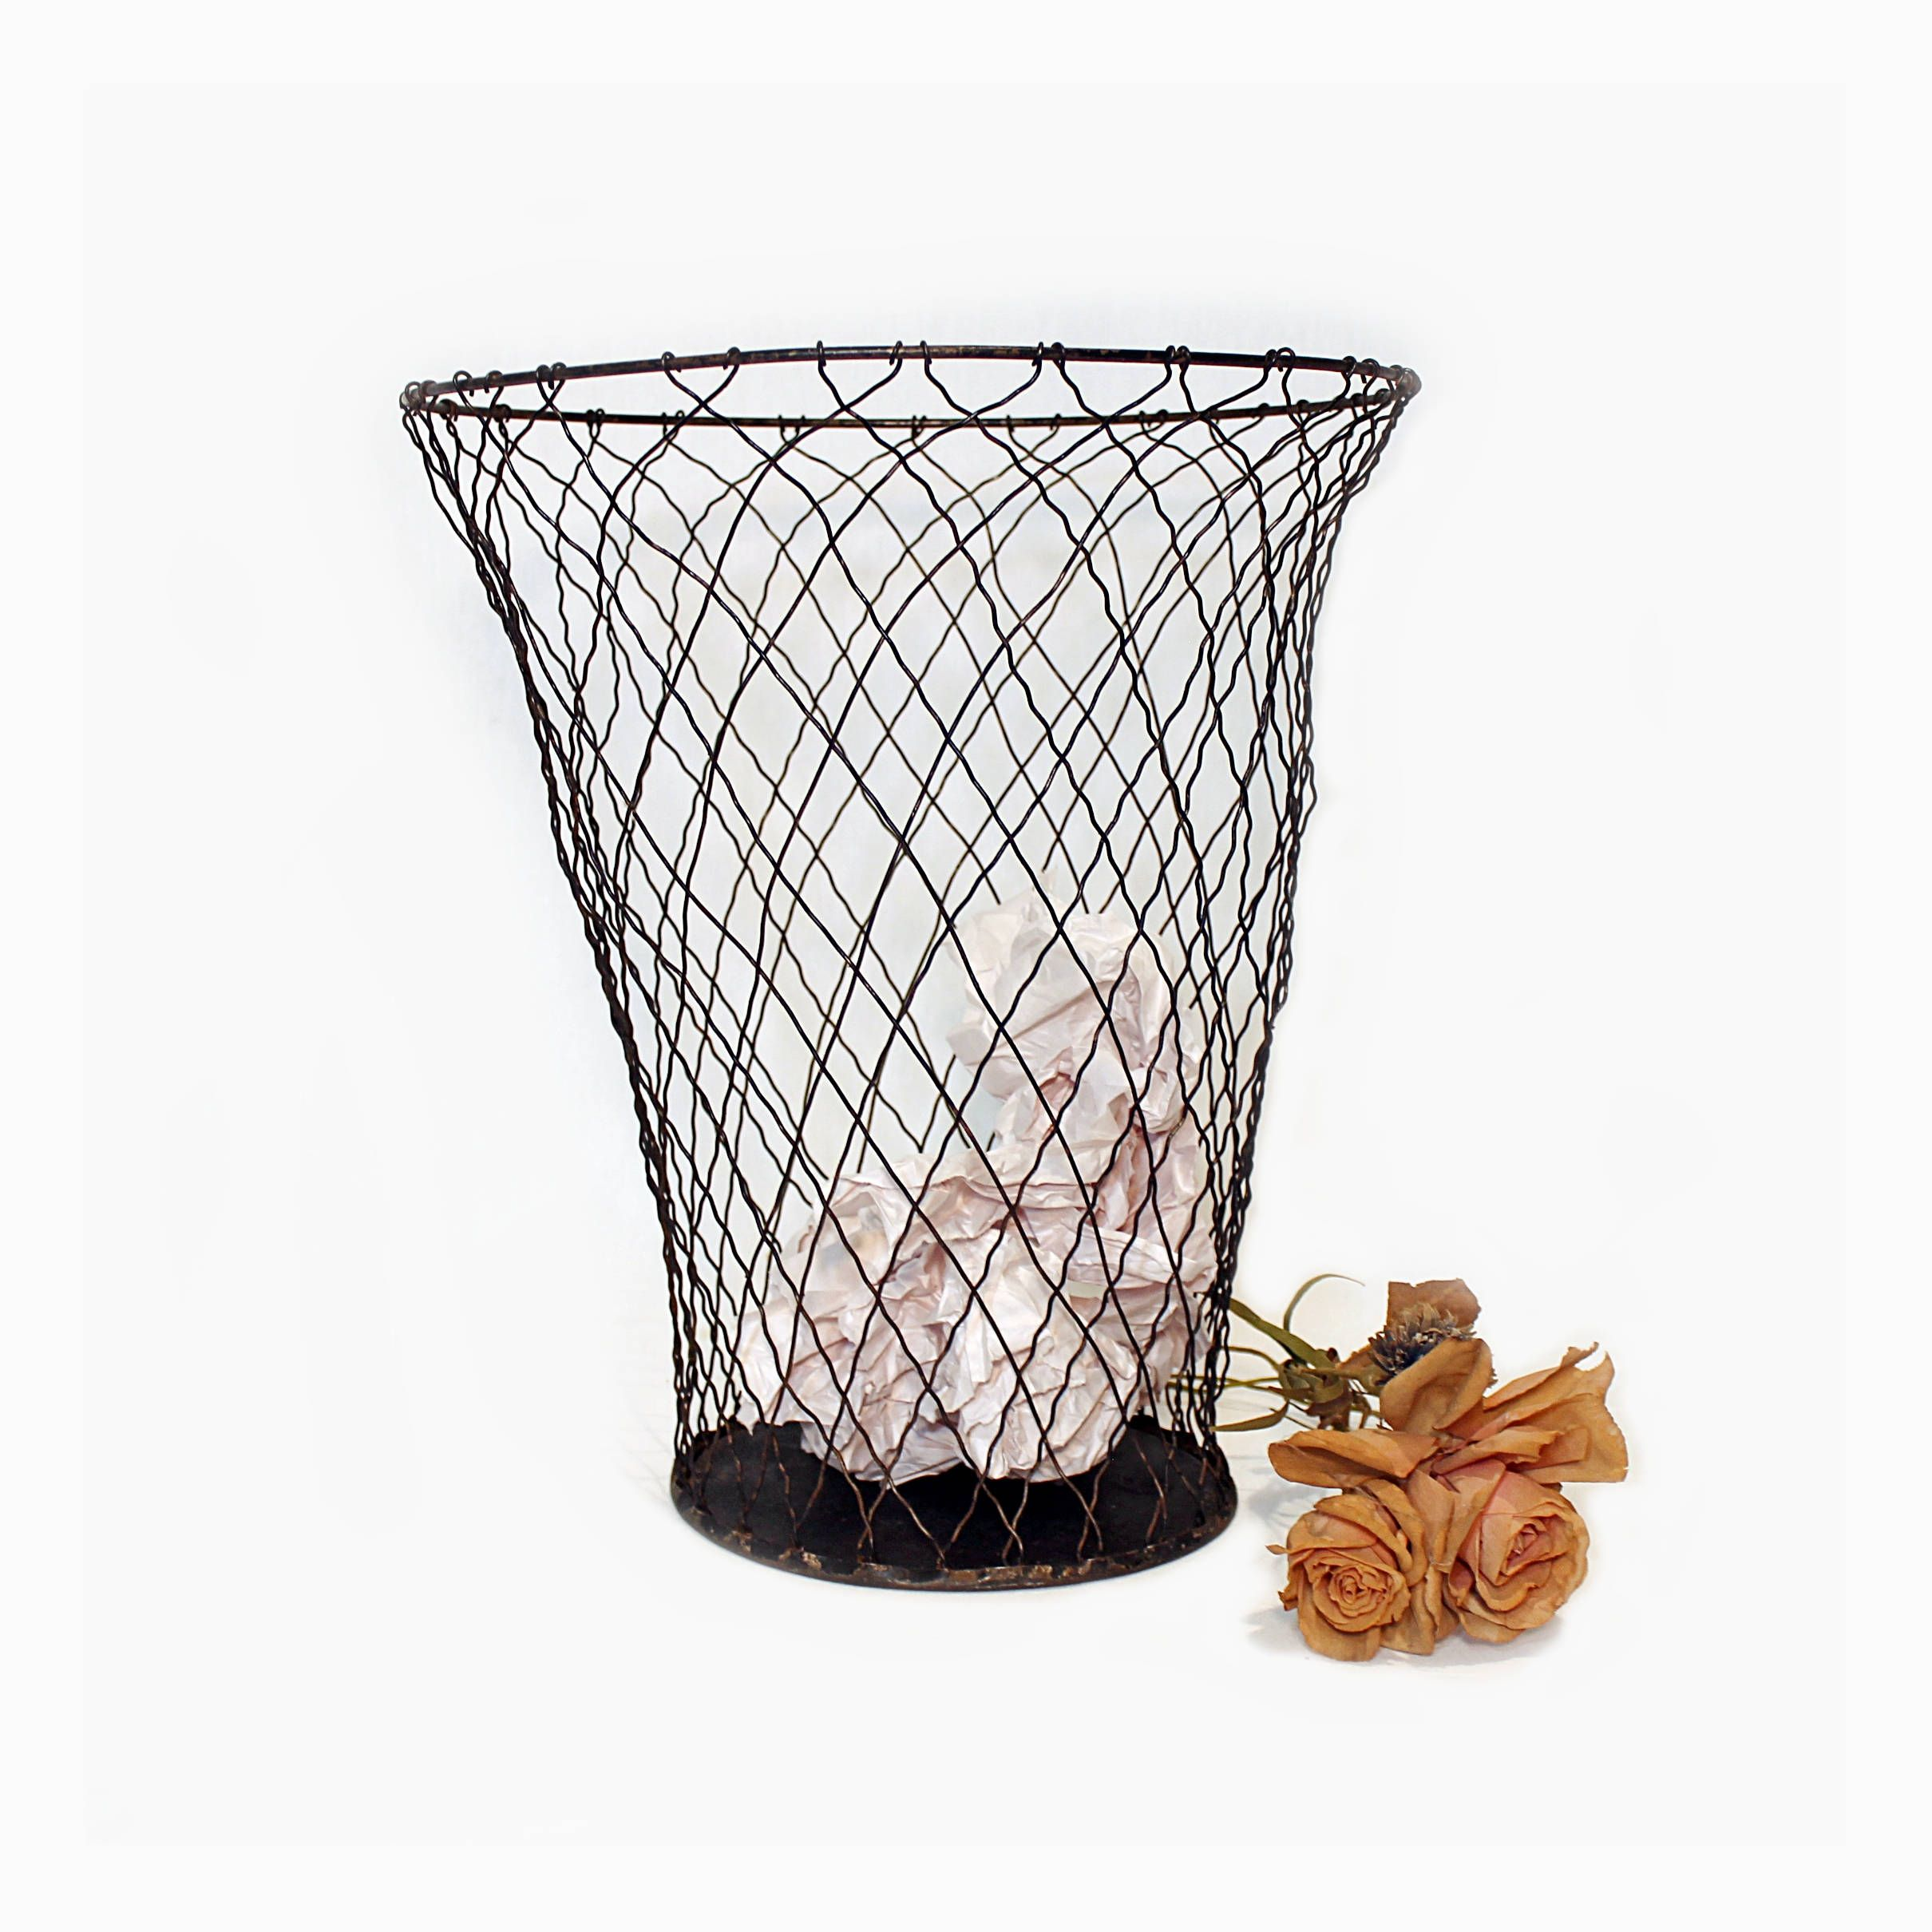 Antique Wire Waste Basket - Metal Wire Trash Can - Industrial Decor ...